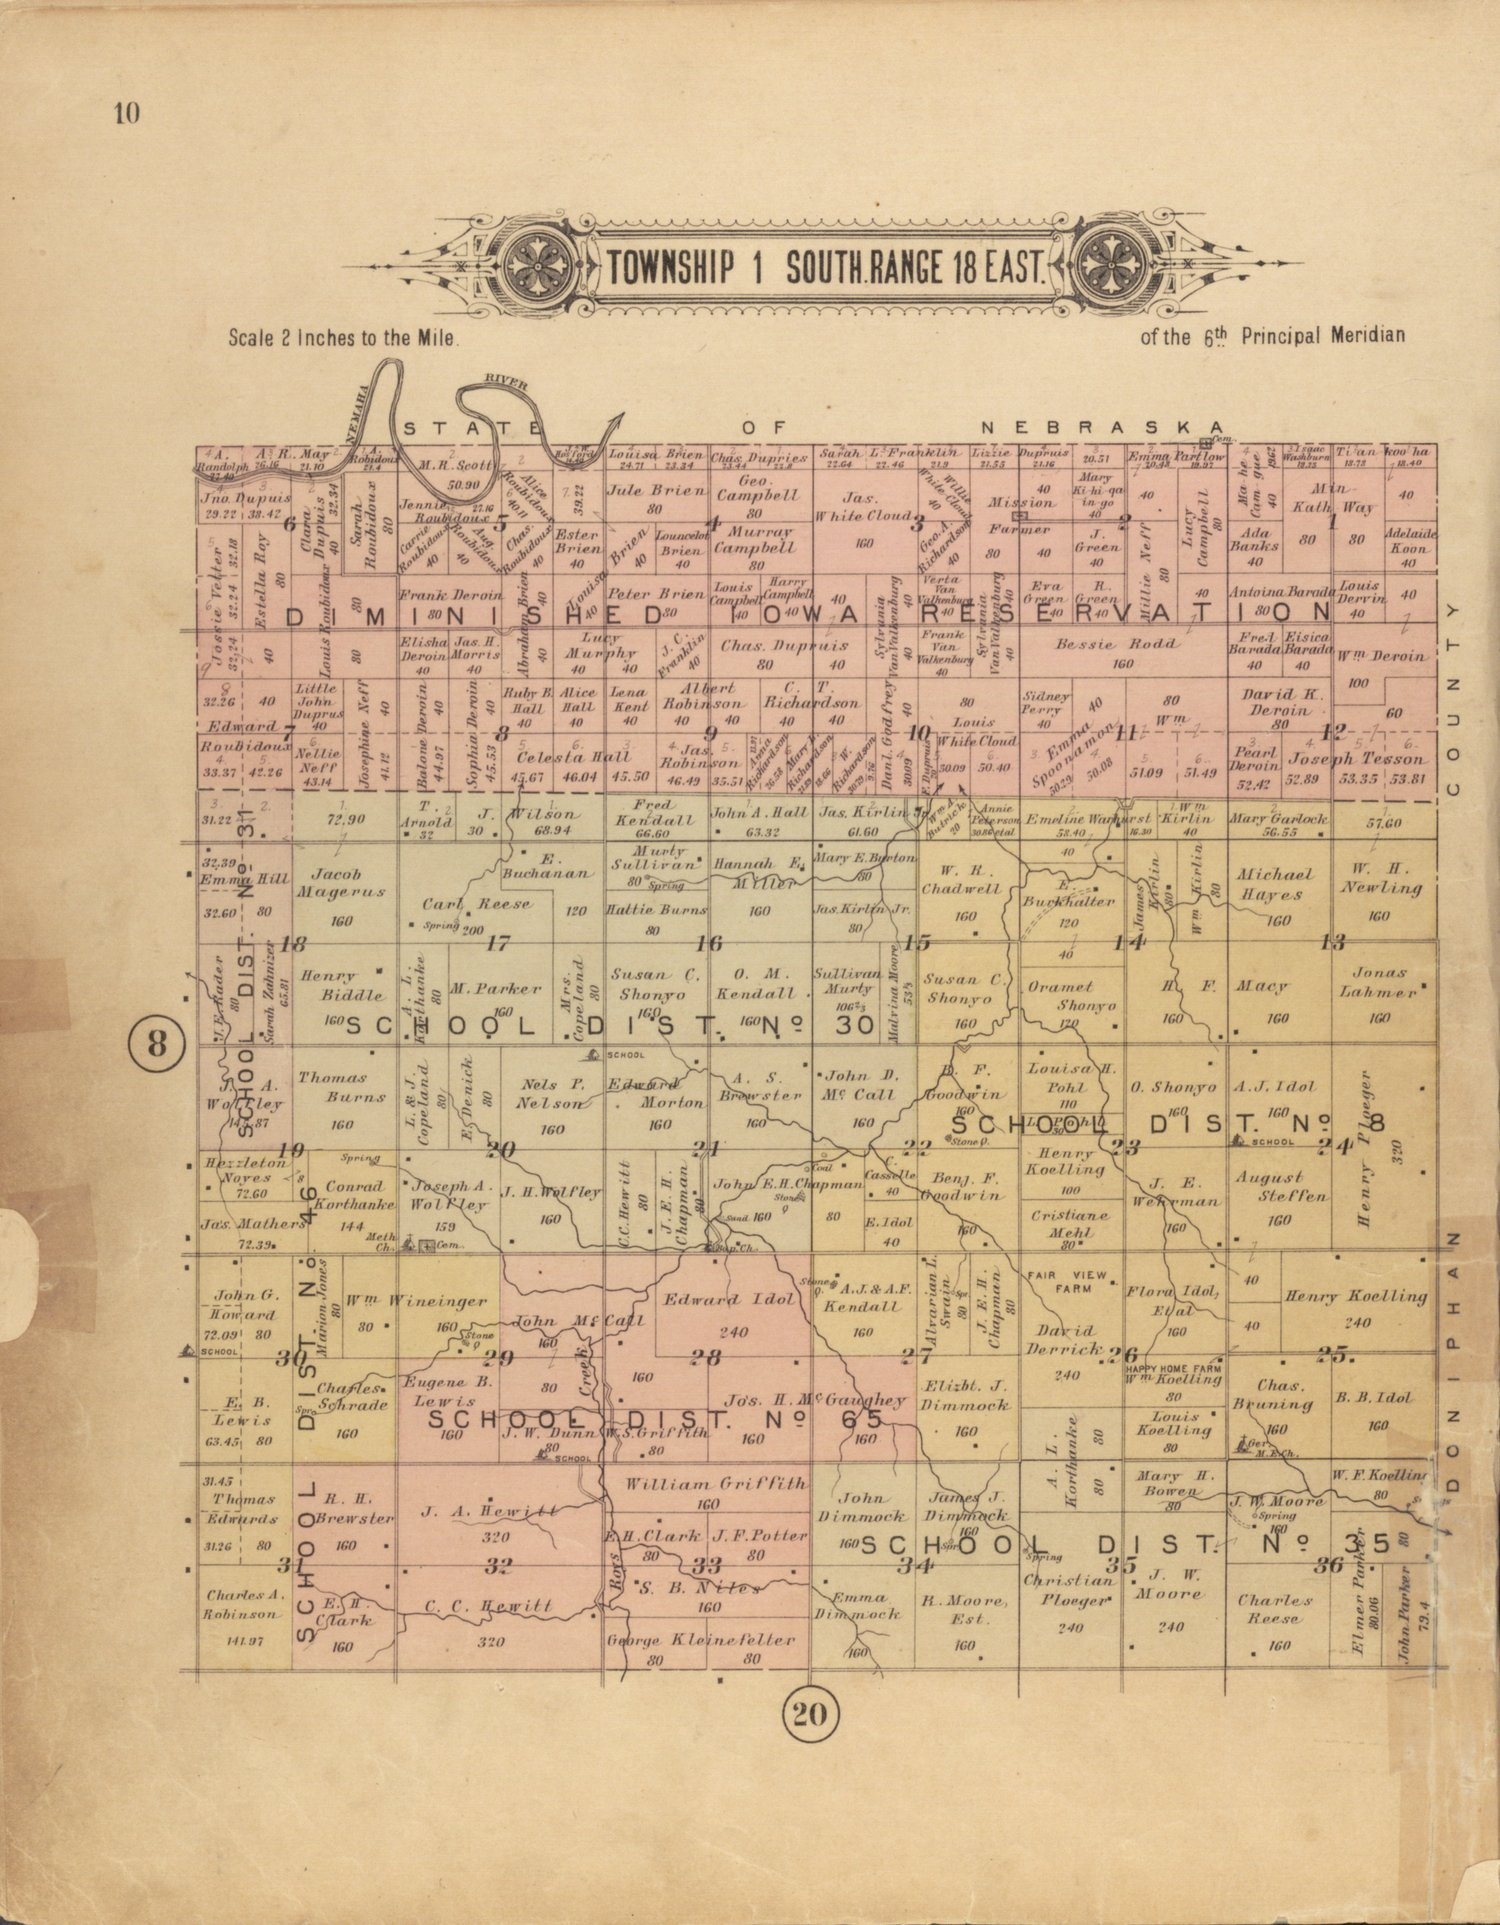 Plat book of Brown County, Kansas - 10